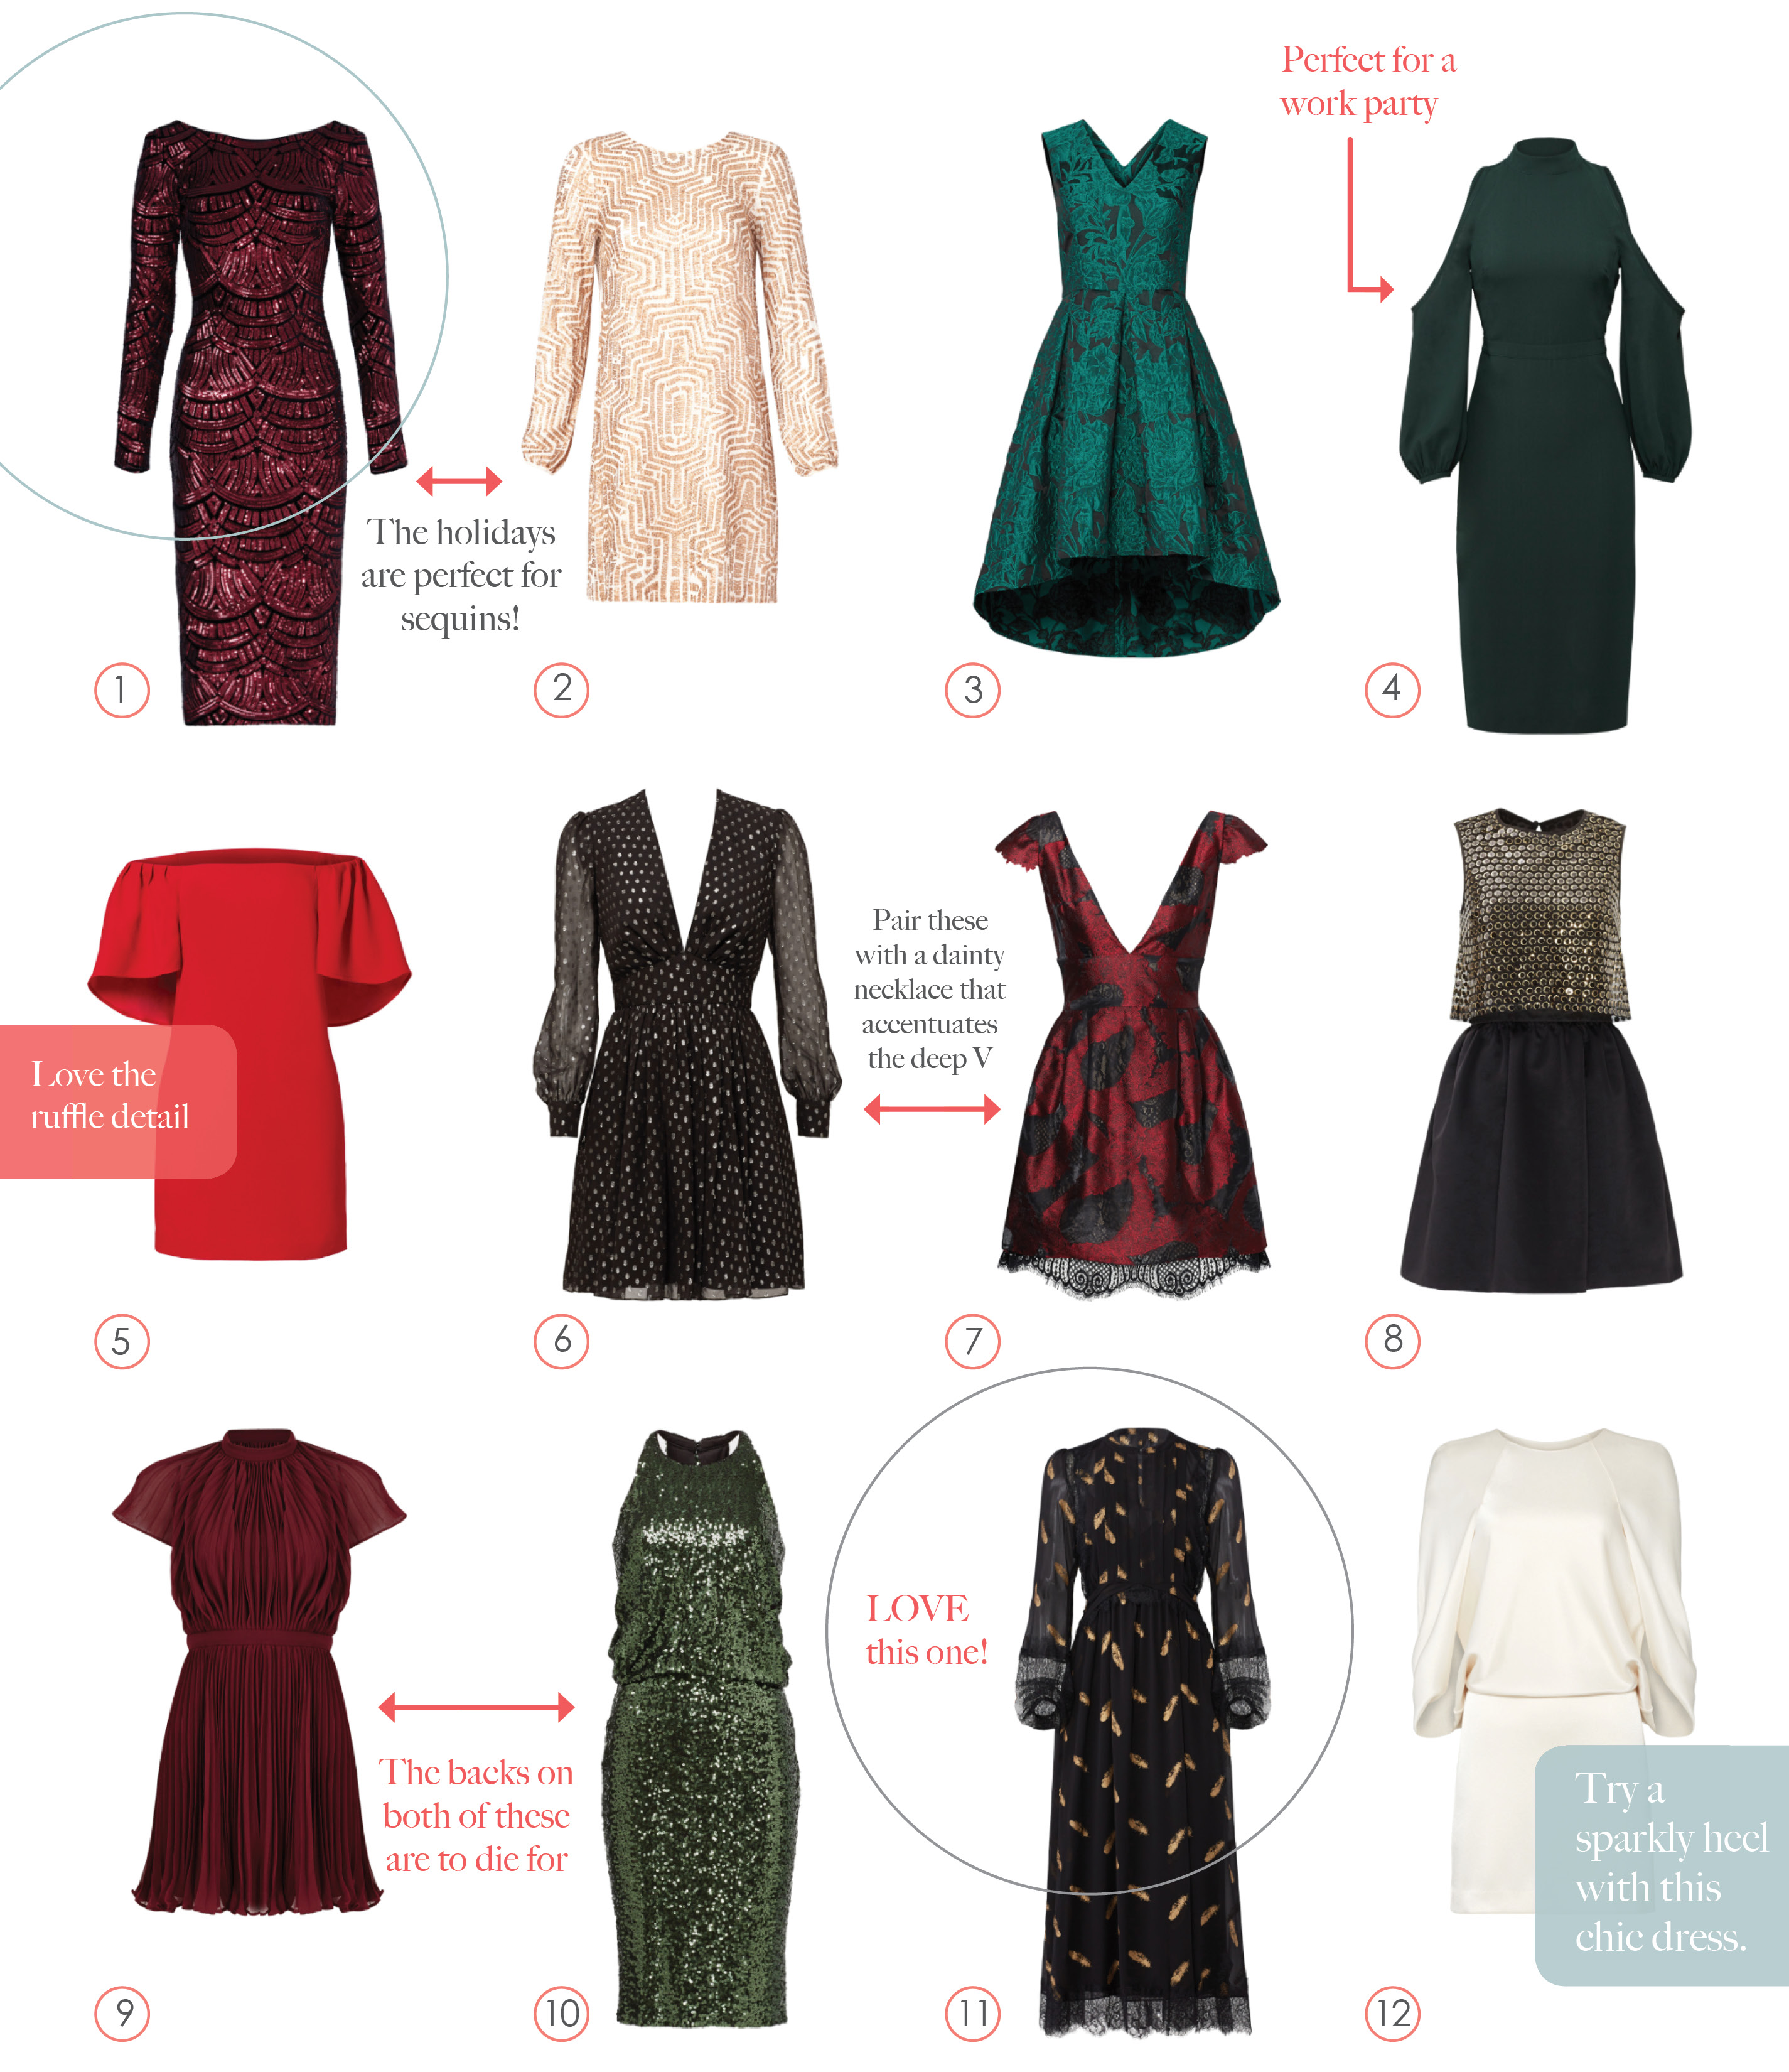 Rent the Runway - Holiday Party Dresses